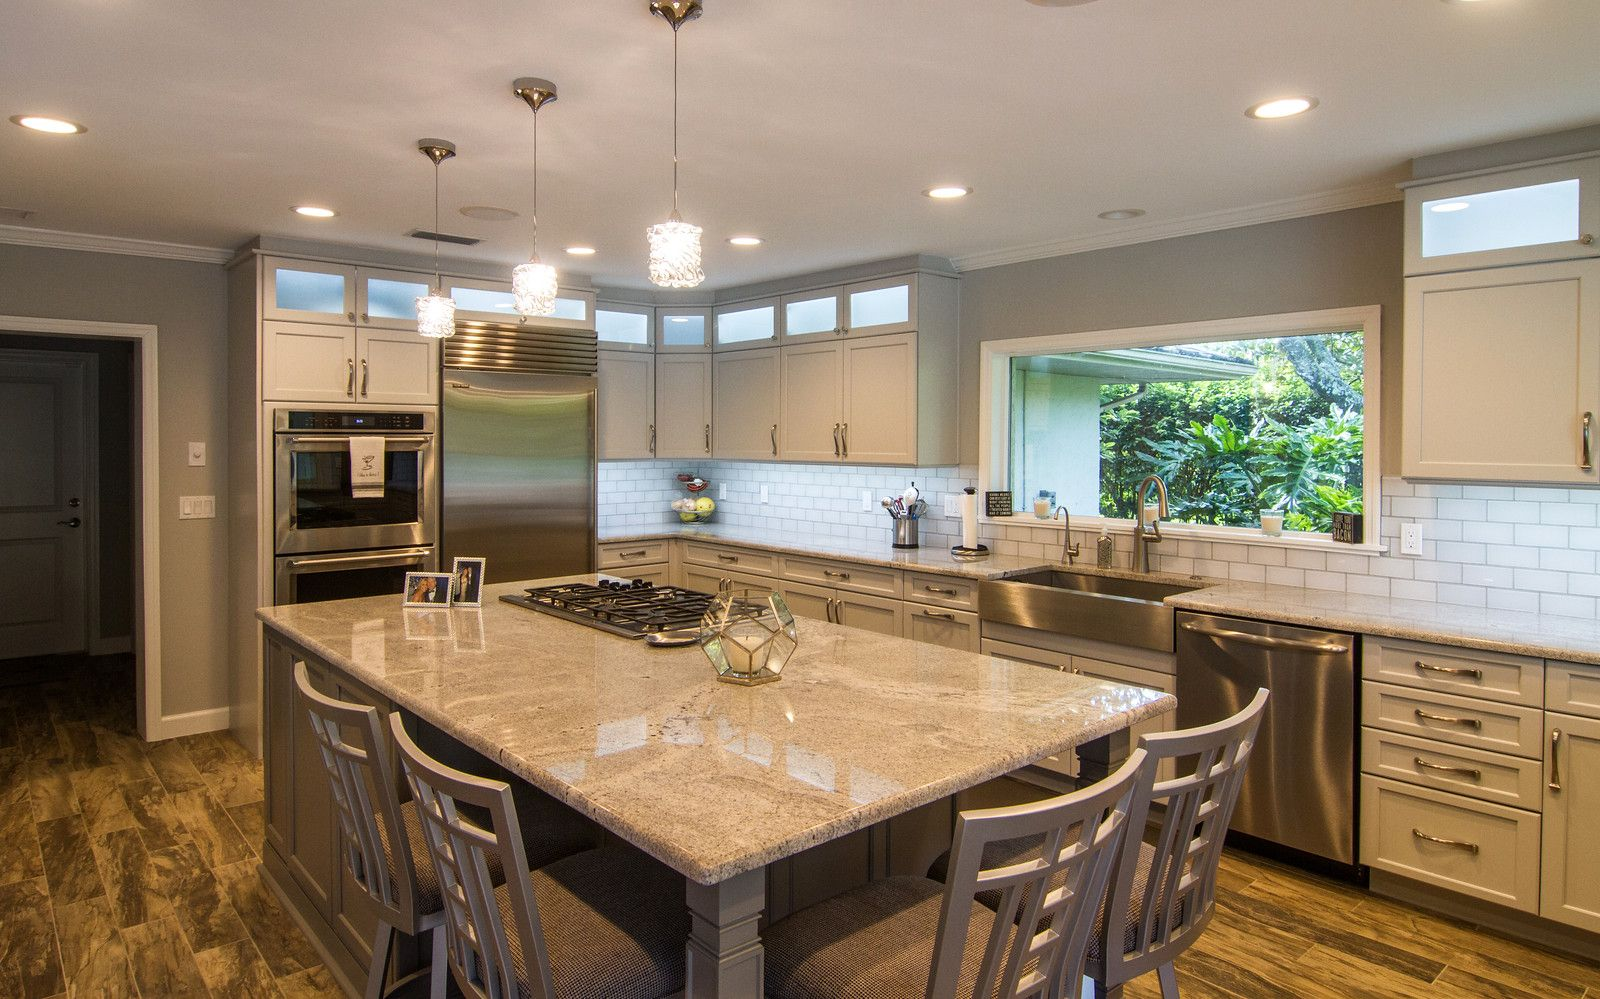 Pin By Mccabinet Inc On Mccabinet Mcprojects Custom Cabinets Cool Kitchens Kitchen